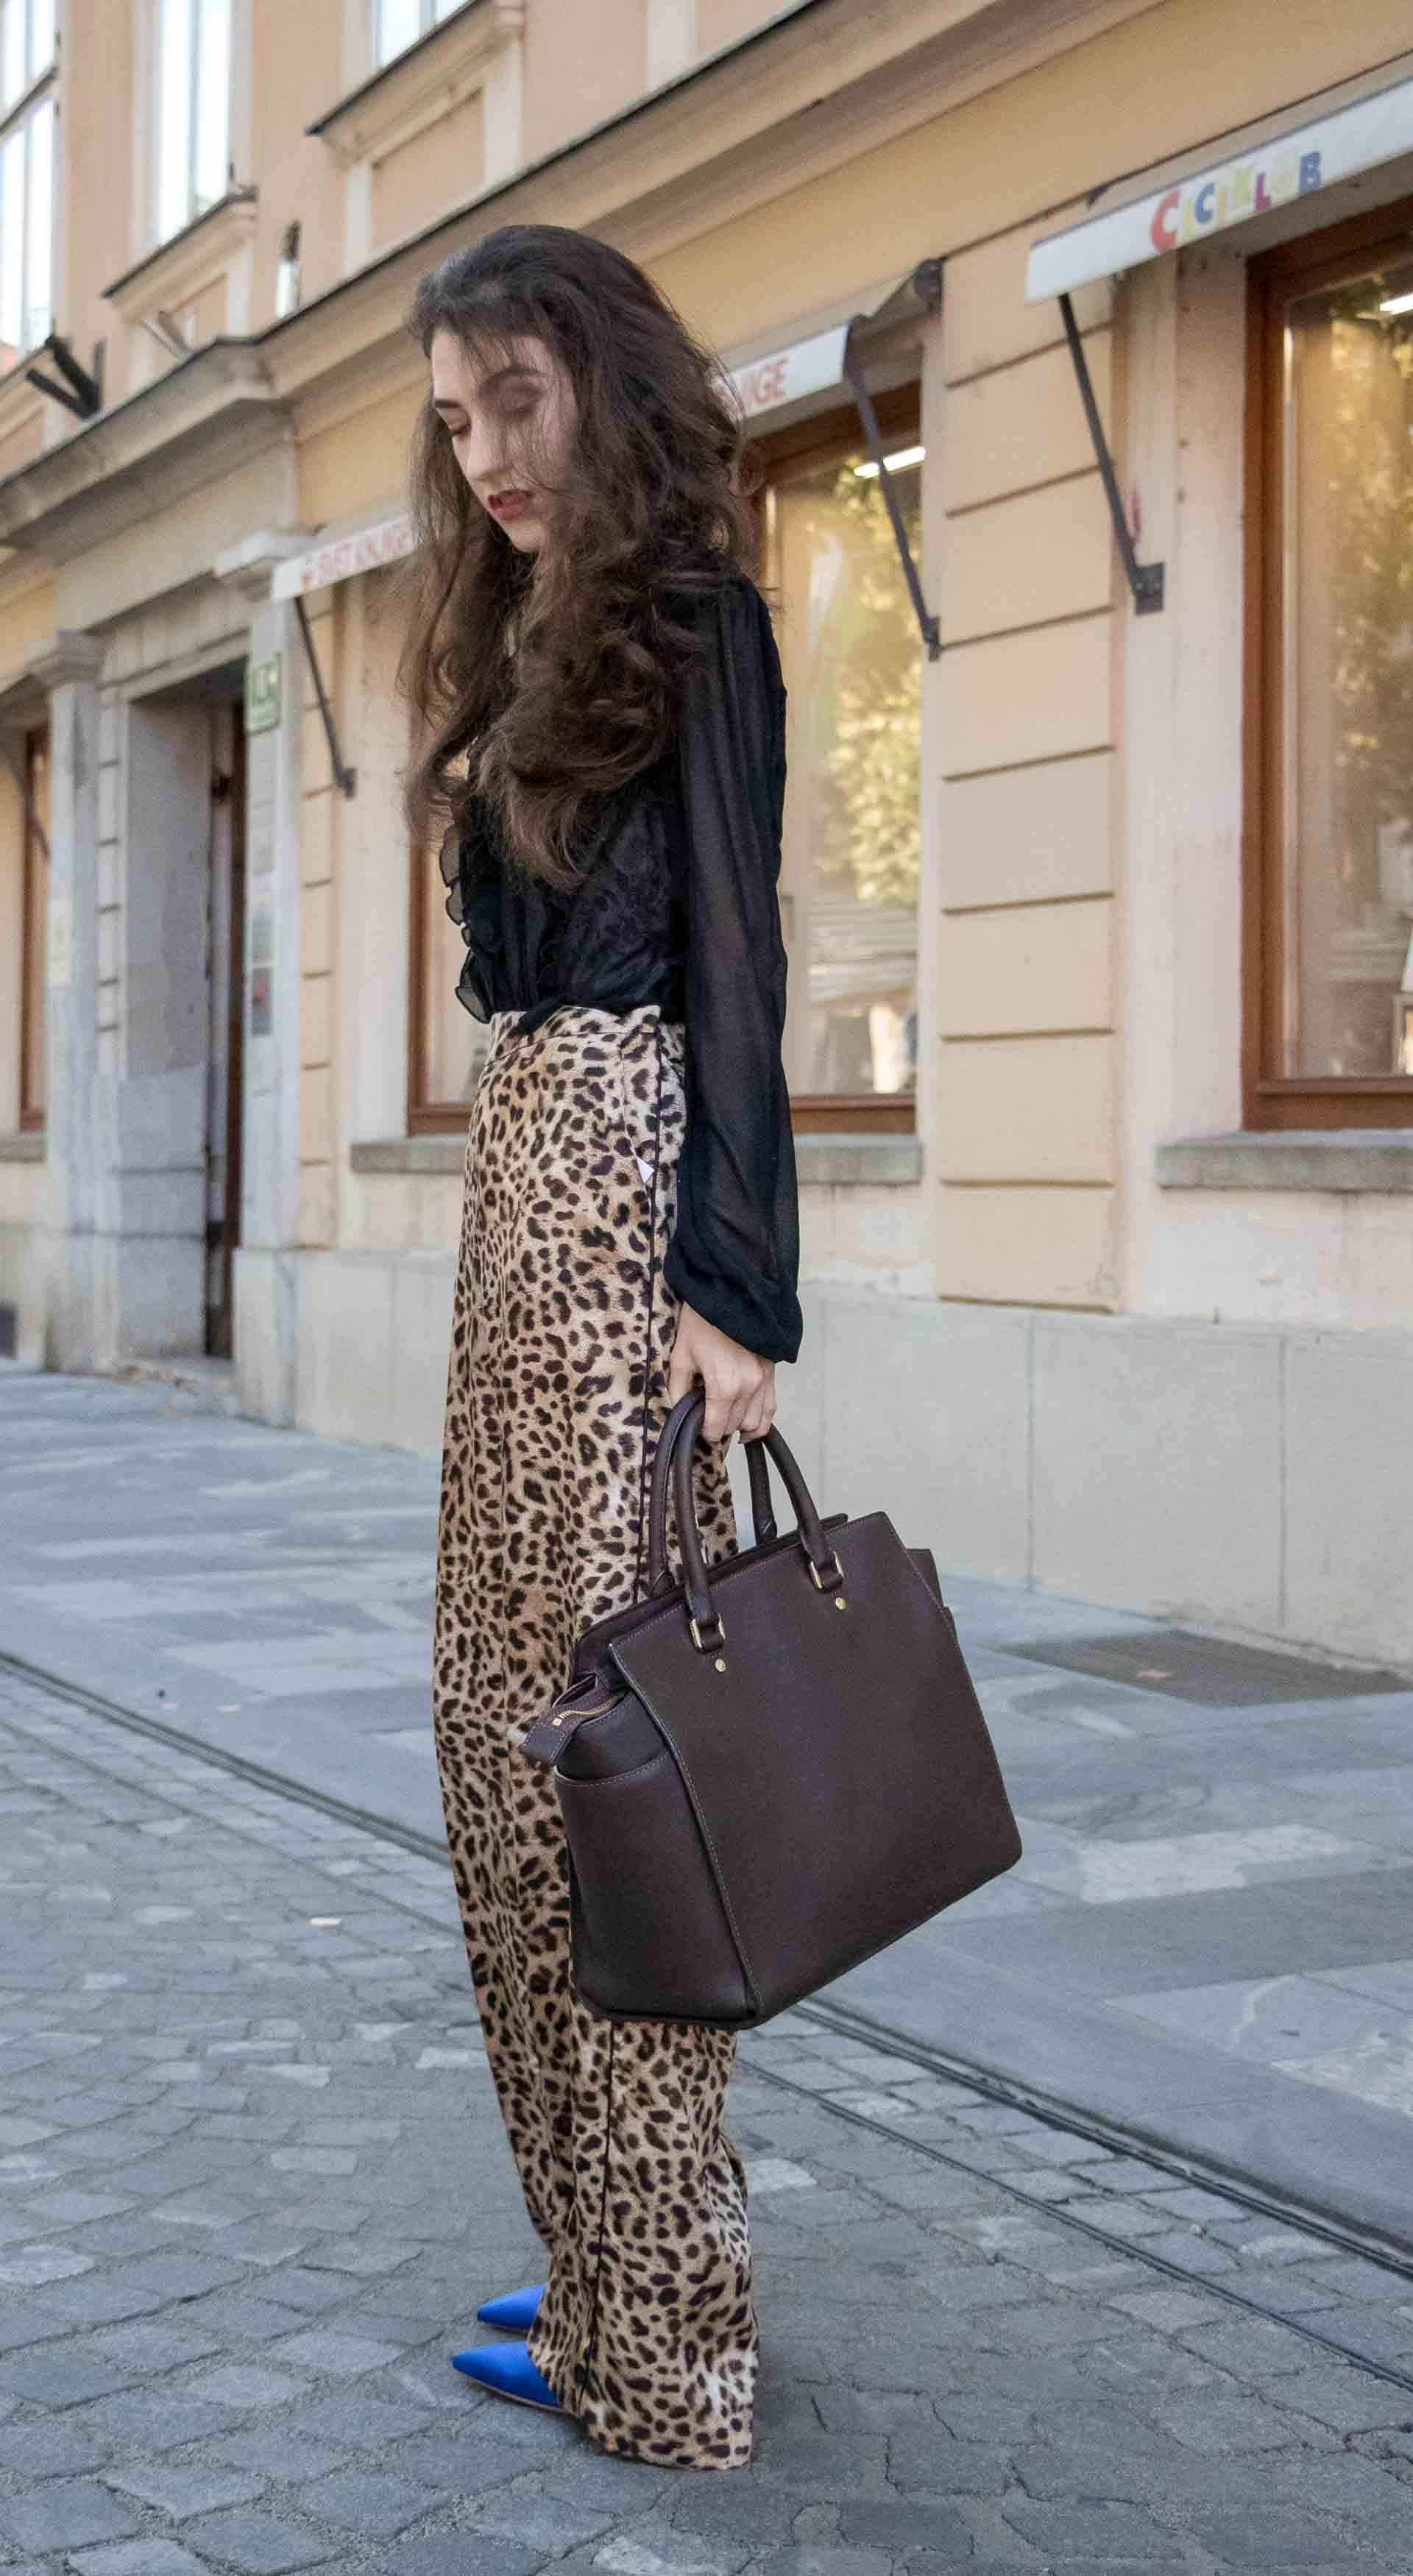 Fashion Blogger Veronika Lipar Of Brunette From Wall Street Sharing How To Look Professional In Leopard Print Pants Fashio Fashion Street Style Korean Fashion